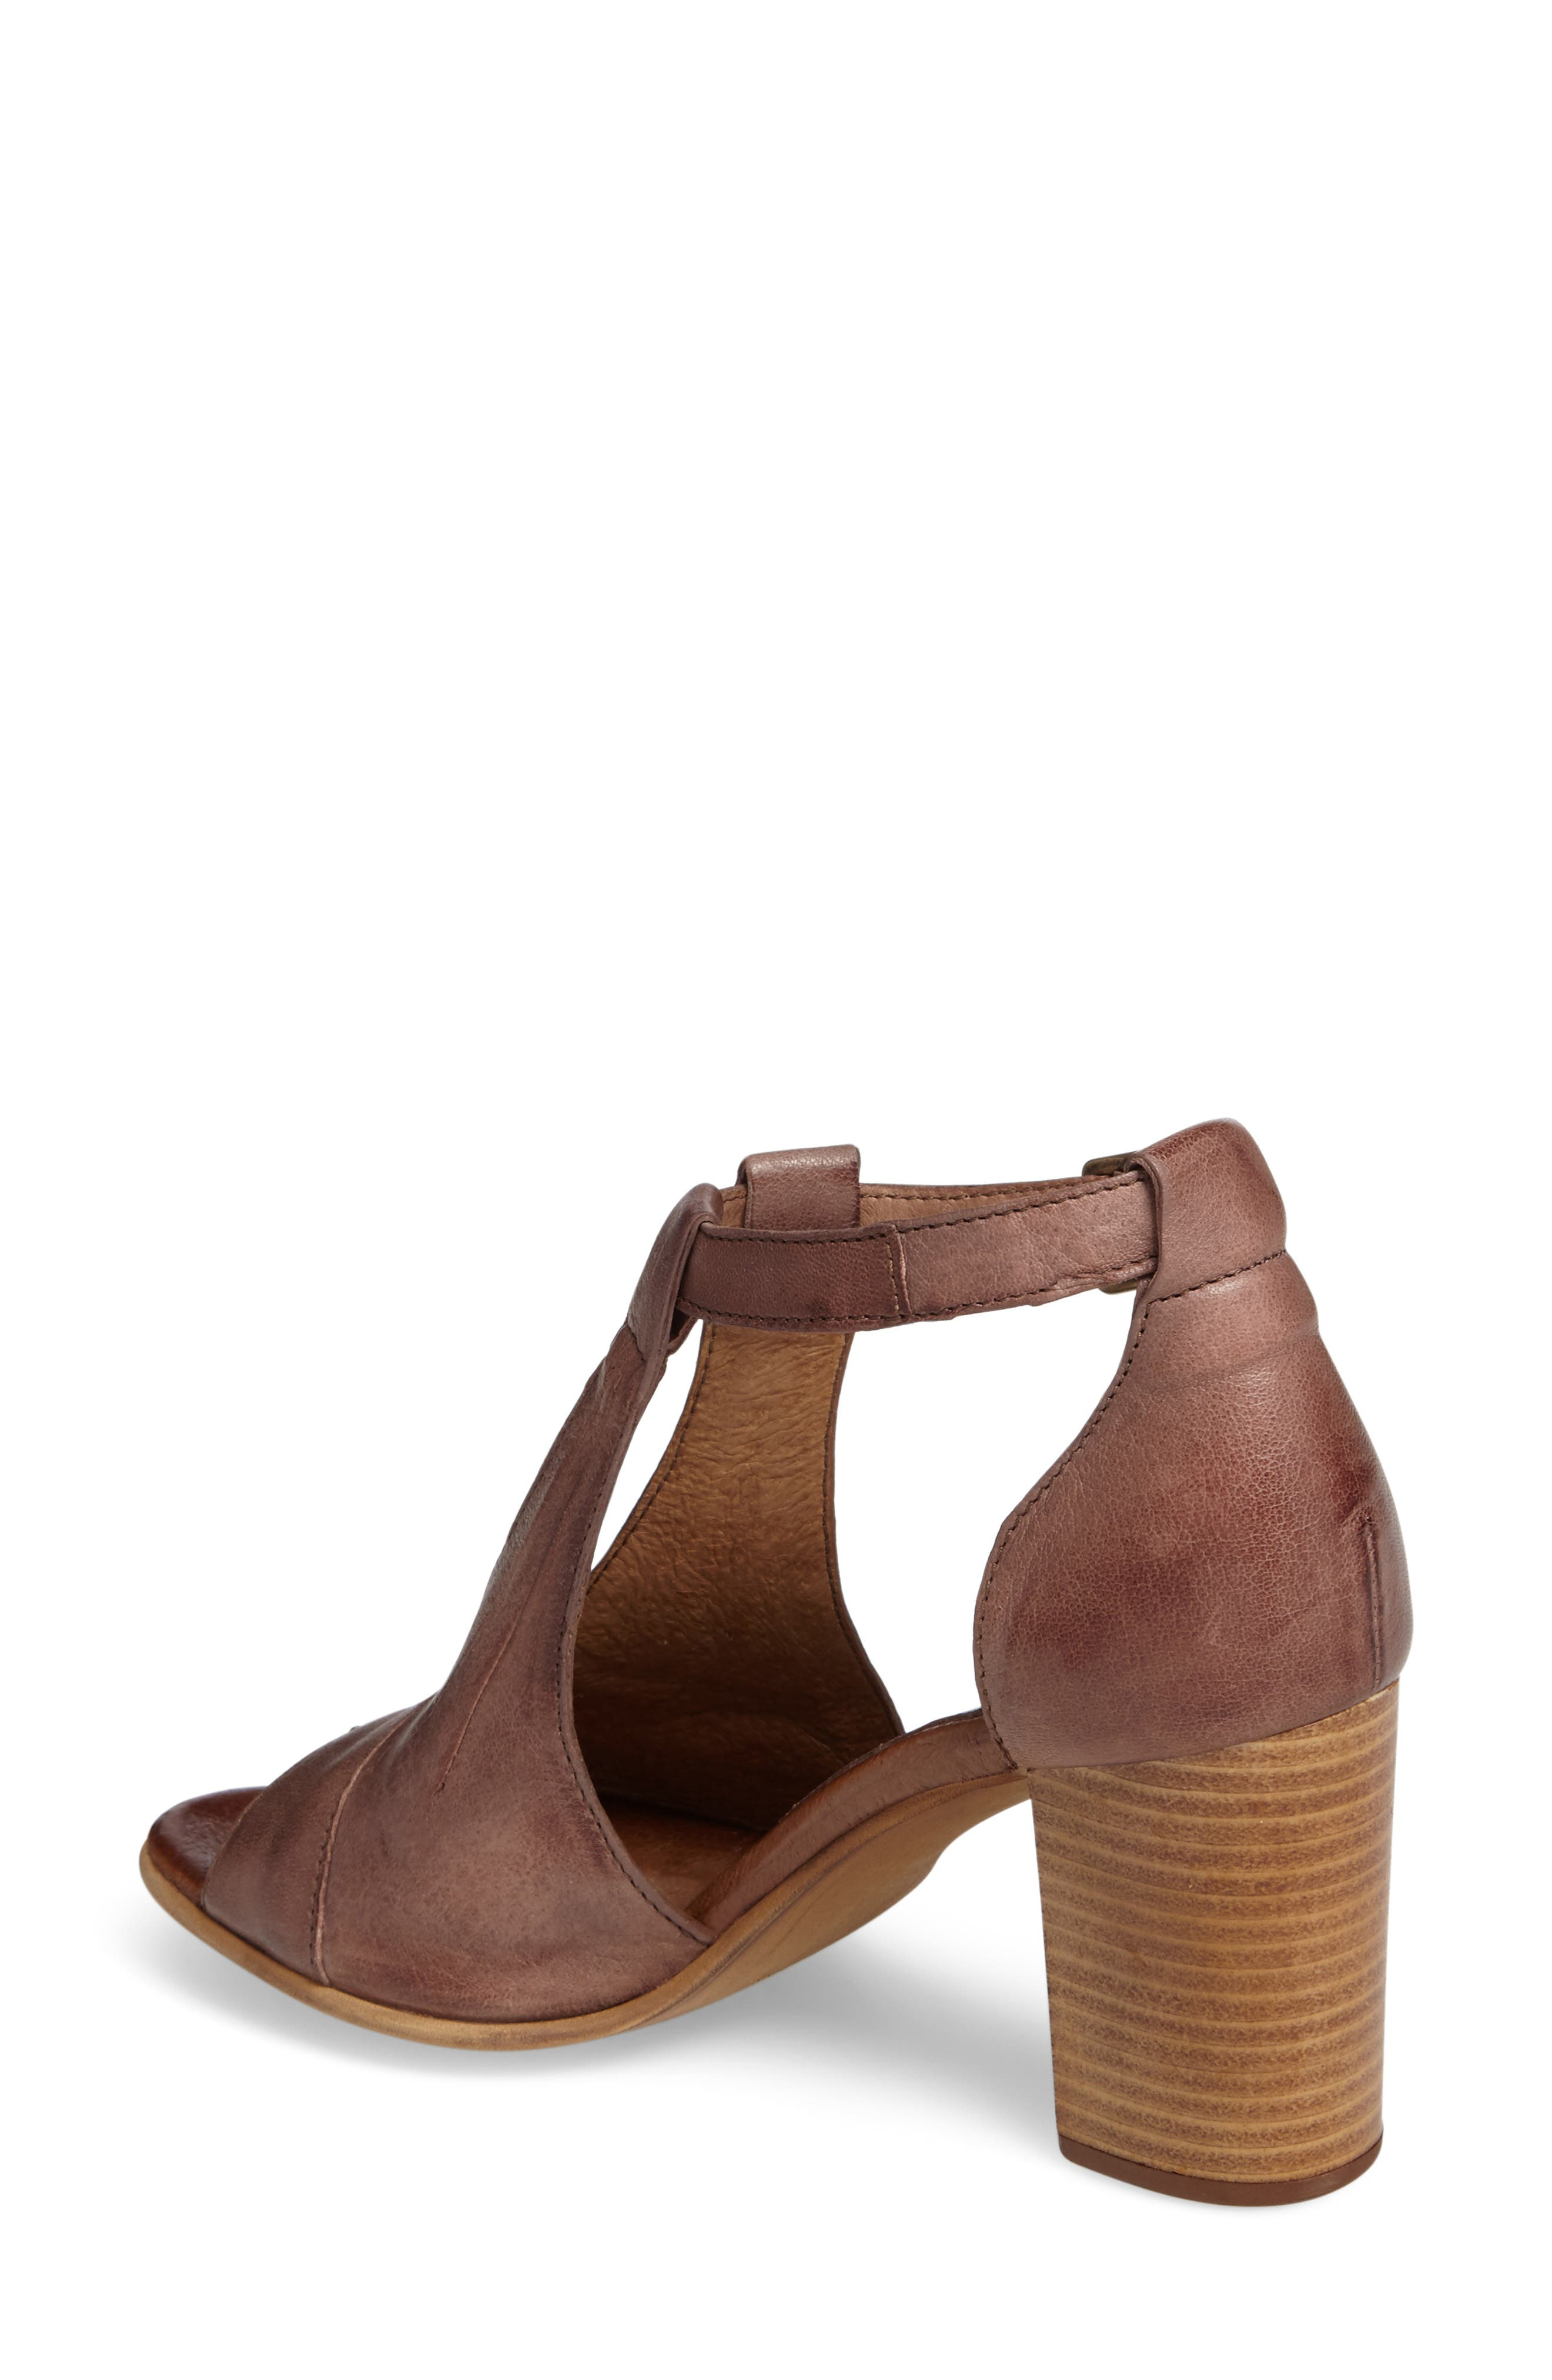 Alternate Image 2  - Miz Mooz Savannah T-Strap Strap Sandal (Women)